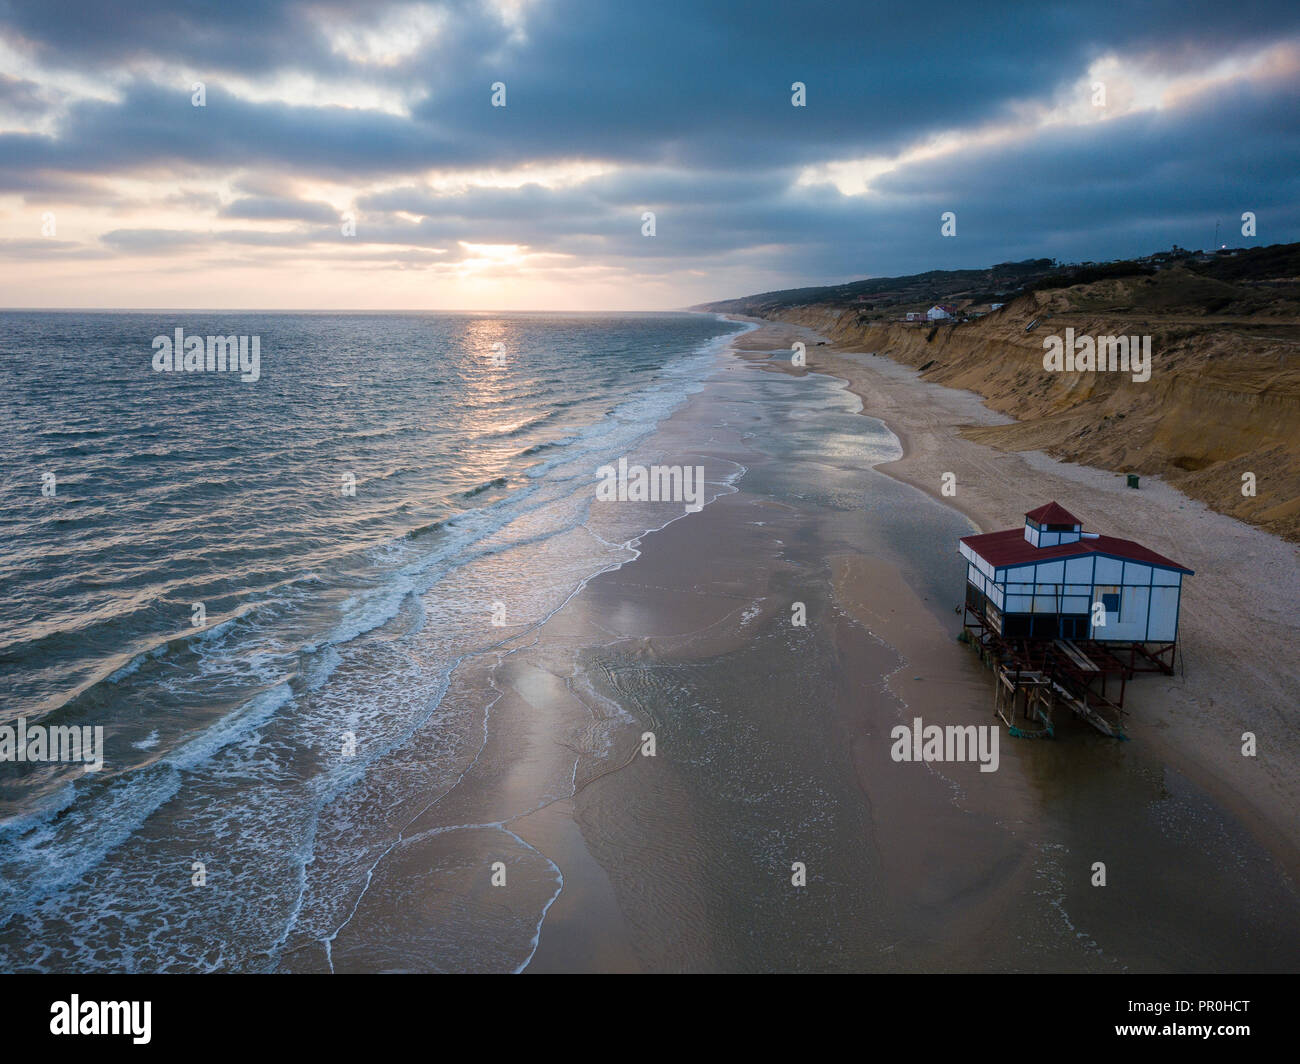 Aerial view of sunset over beach, by drone, Matalascanas, Huelva District, Andalucia, Spain, Europe - Stock Image